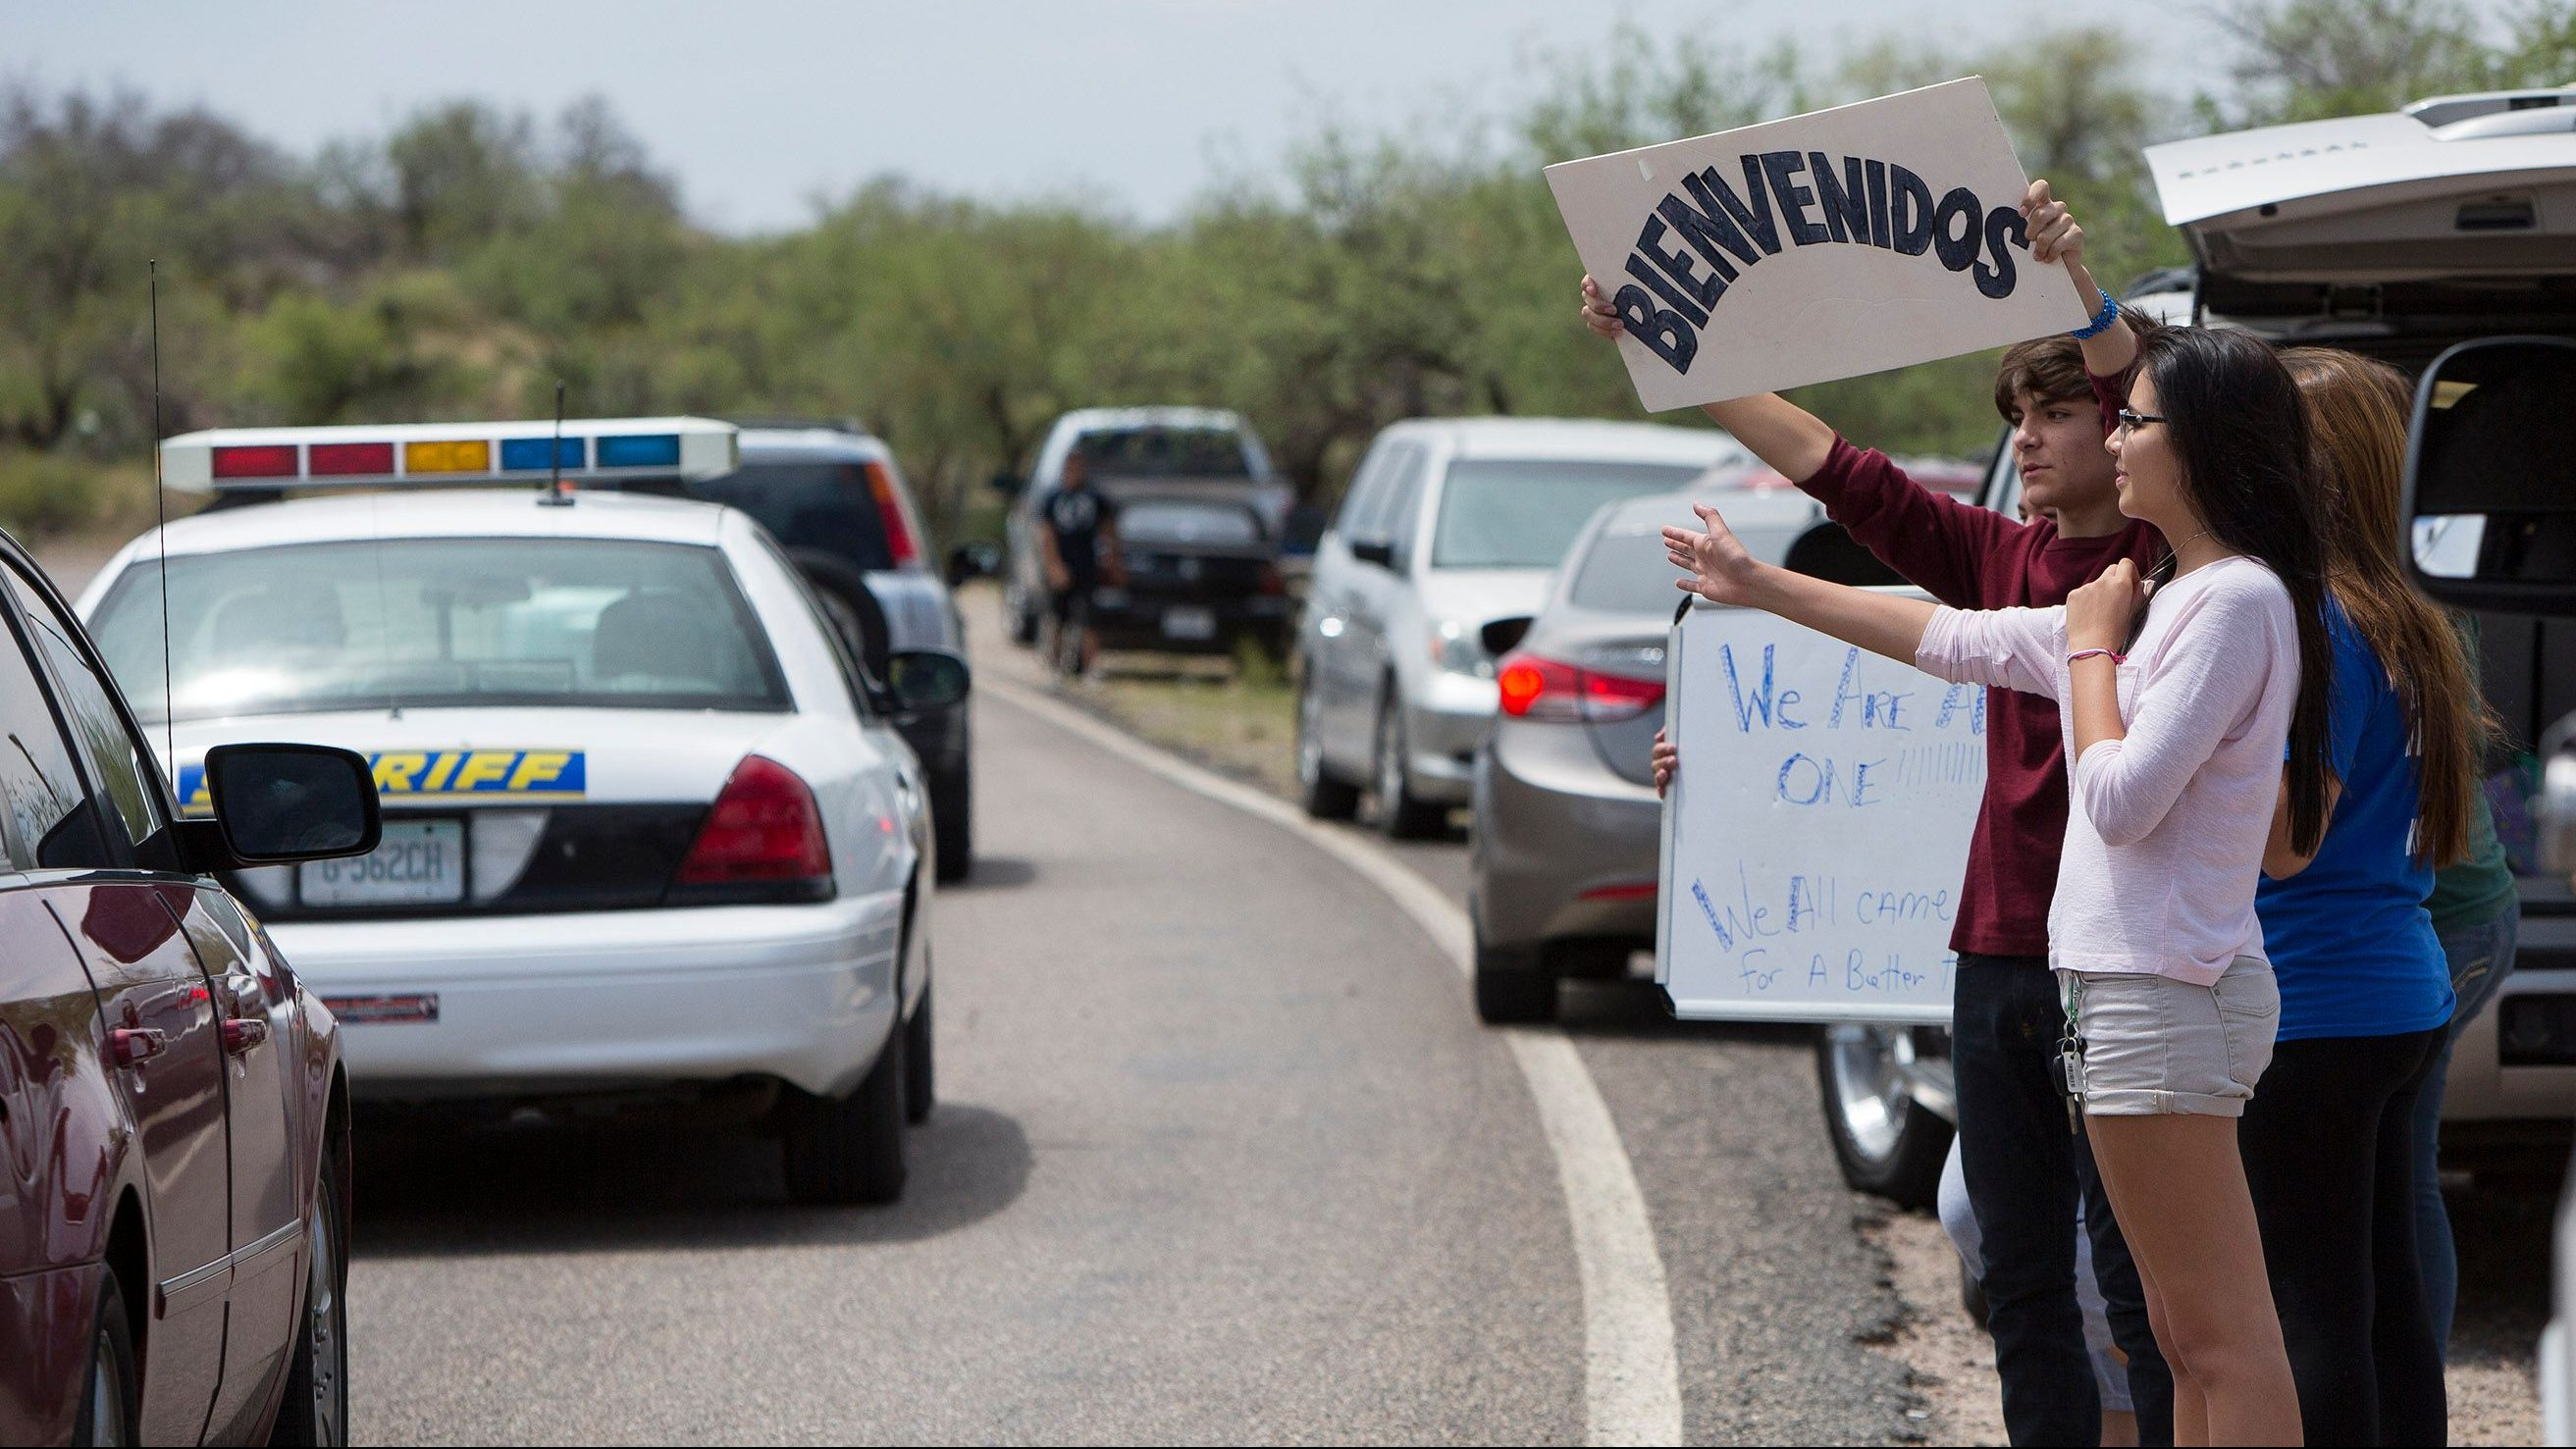 """Marcus Martinez of Oracle, Arizona, holds up a sign in Spanish that reads """"Welcome"""" as he and other members of his family watch as vehicles leave a demonstration against the arrival of undocumented immigrants in Oracle, Arizona July 15, 2014. In a scene reminiscent of similar protests in California, about 65 demonstrators gathered at a fork in the road near the small town of Oracle to complain that the federal government's response to a surge of new arrivals from Central America was putting their communities at risk."""